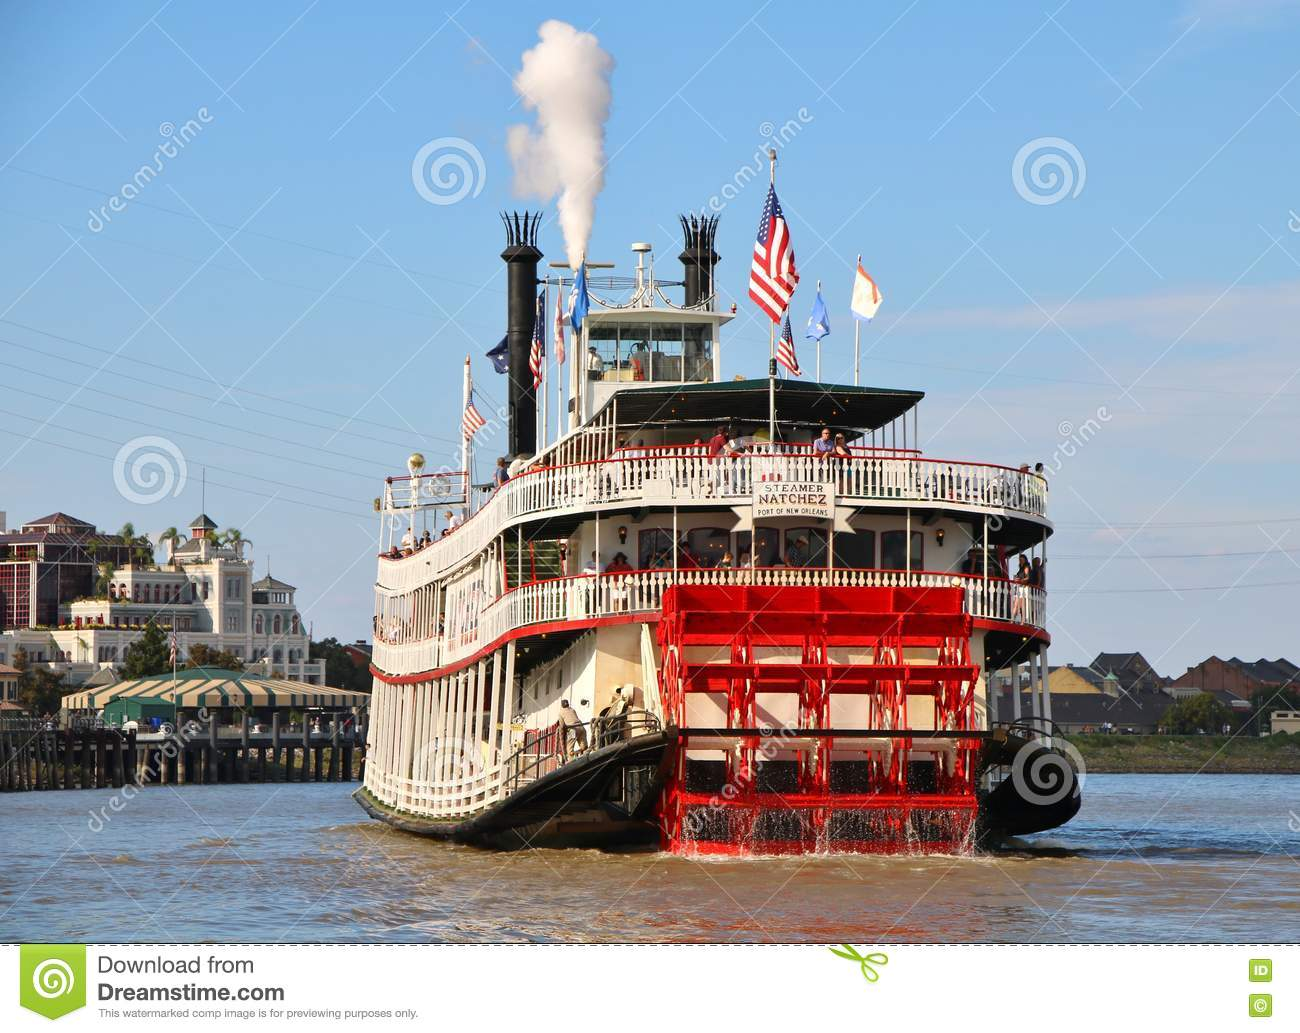 Prices For Mississippi River Cruises >> New Orleans Steamboat NATCHEZ, Mississippi River Editorial Image - Image of company, european ...